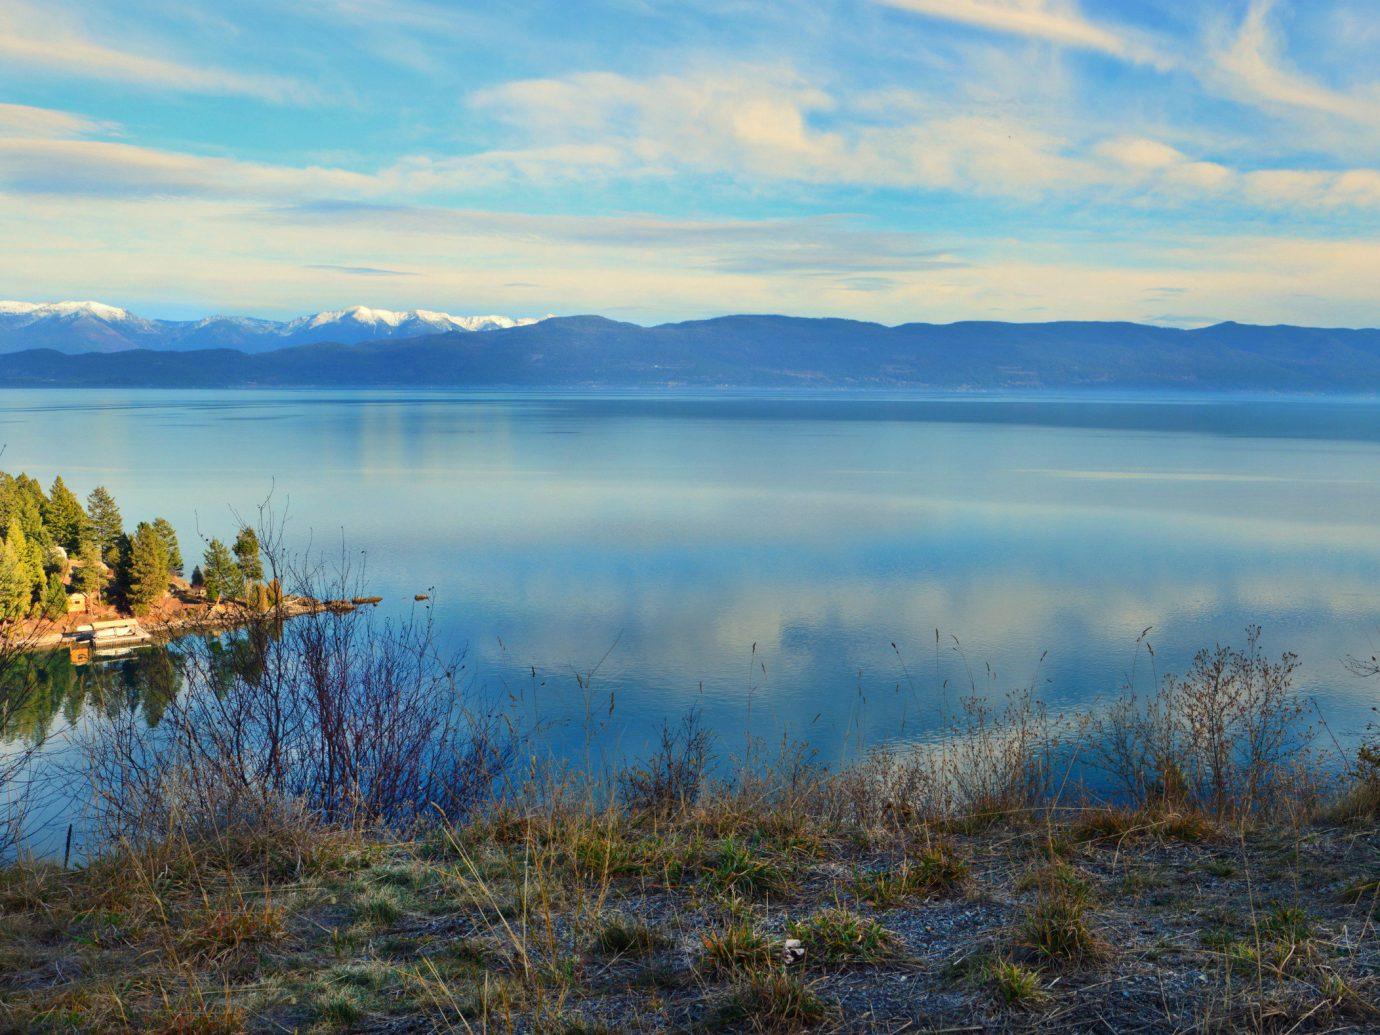 Lakes + Rivers Outdoors + Adventure Trip Ideas outdoor grass sky water Nature habitat reflection Lake wilderness atmospheric phenomenon body of water natural environment loch cloud mountain horizon morning pond dawn sunrise reservoir landscape overlooking wetland Sea meadow marsh dusk autumn hillside land lush